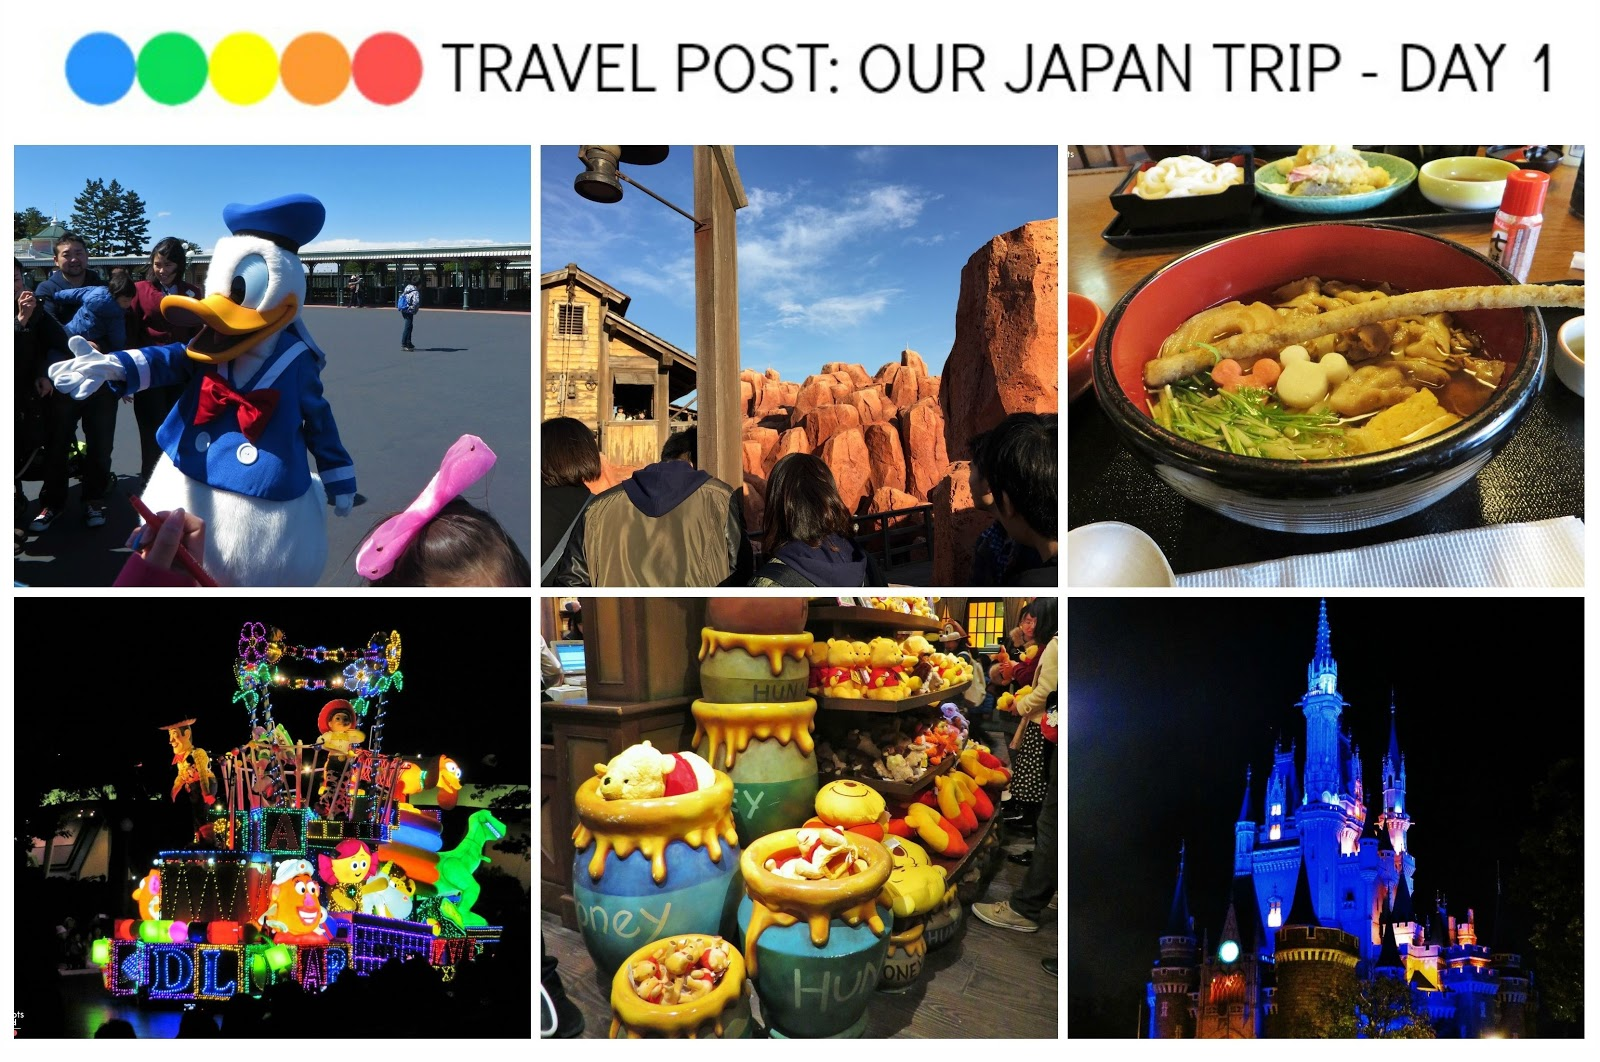 Travel post: Our Japan Trip - Day 1 (Tokyo Disneyland, Restaurant Hokusai and 7-Eleven food)